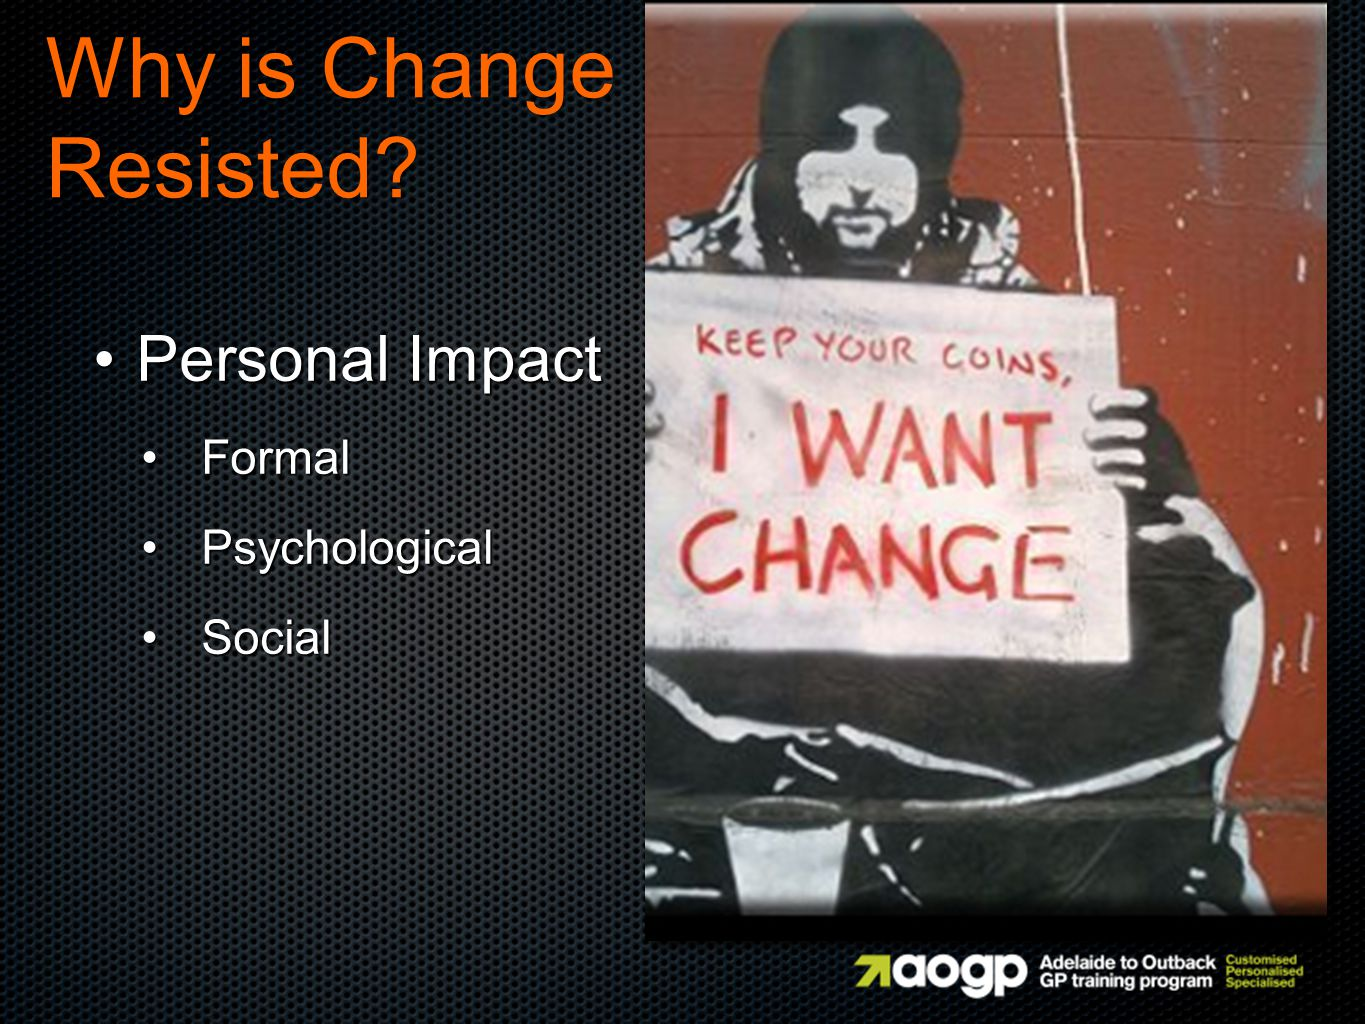 Personal Impact Personal Impact Formal Formal Psychological Psychological Social Social Why is Change Resisted